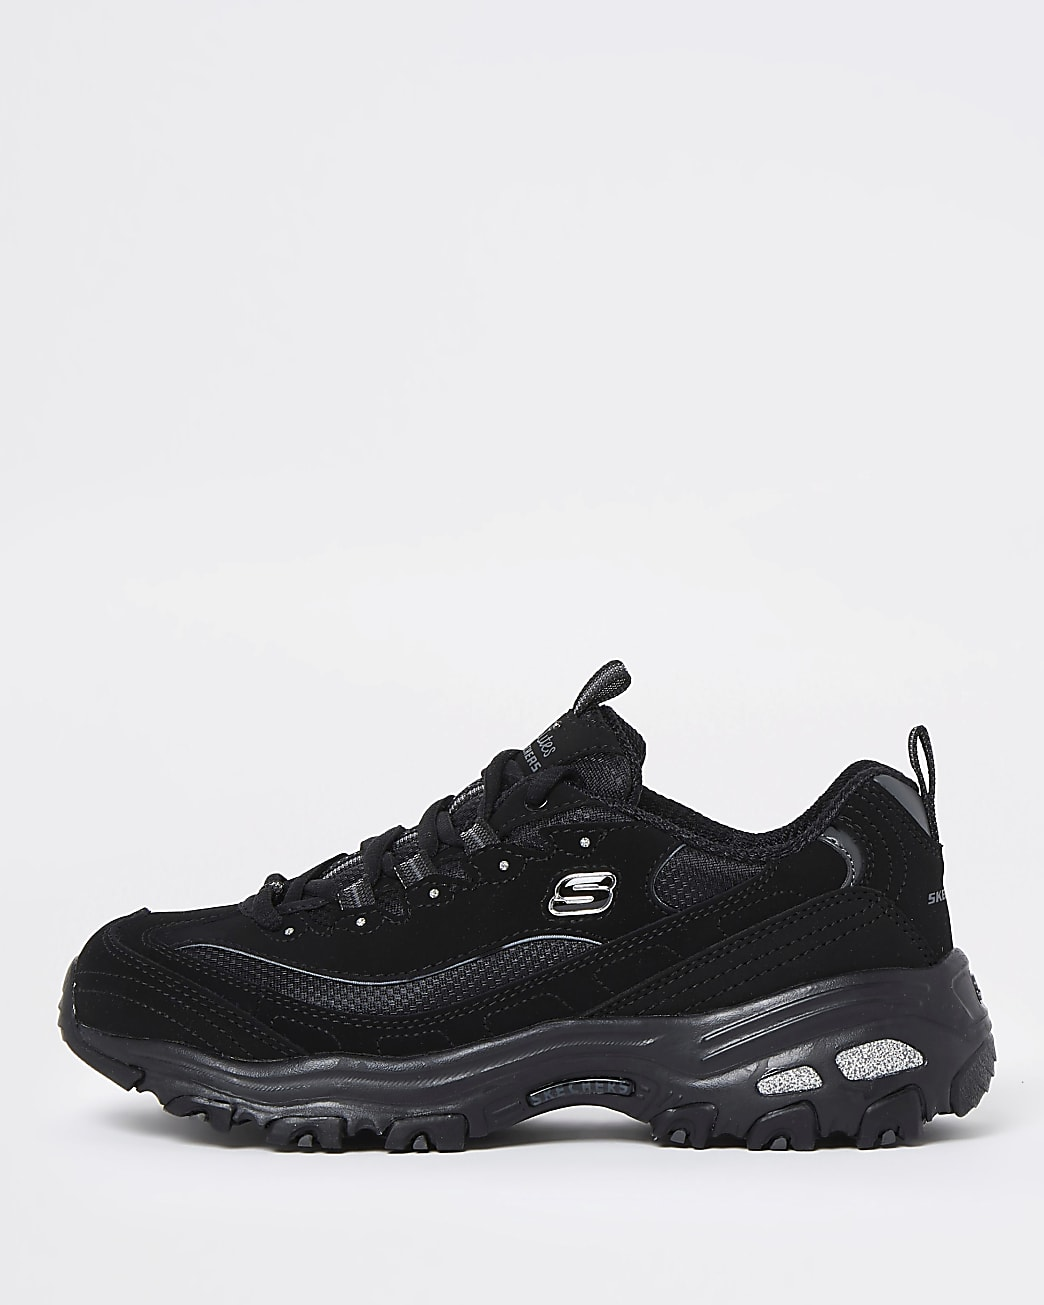 Skechers black lace up trainers